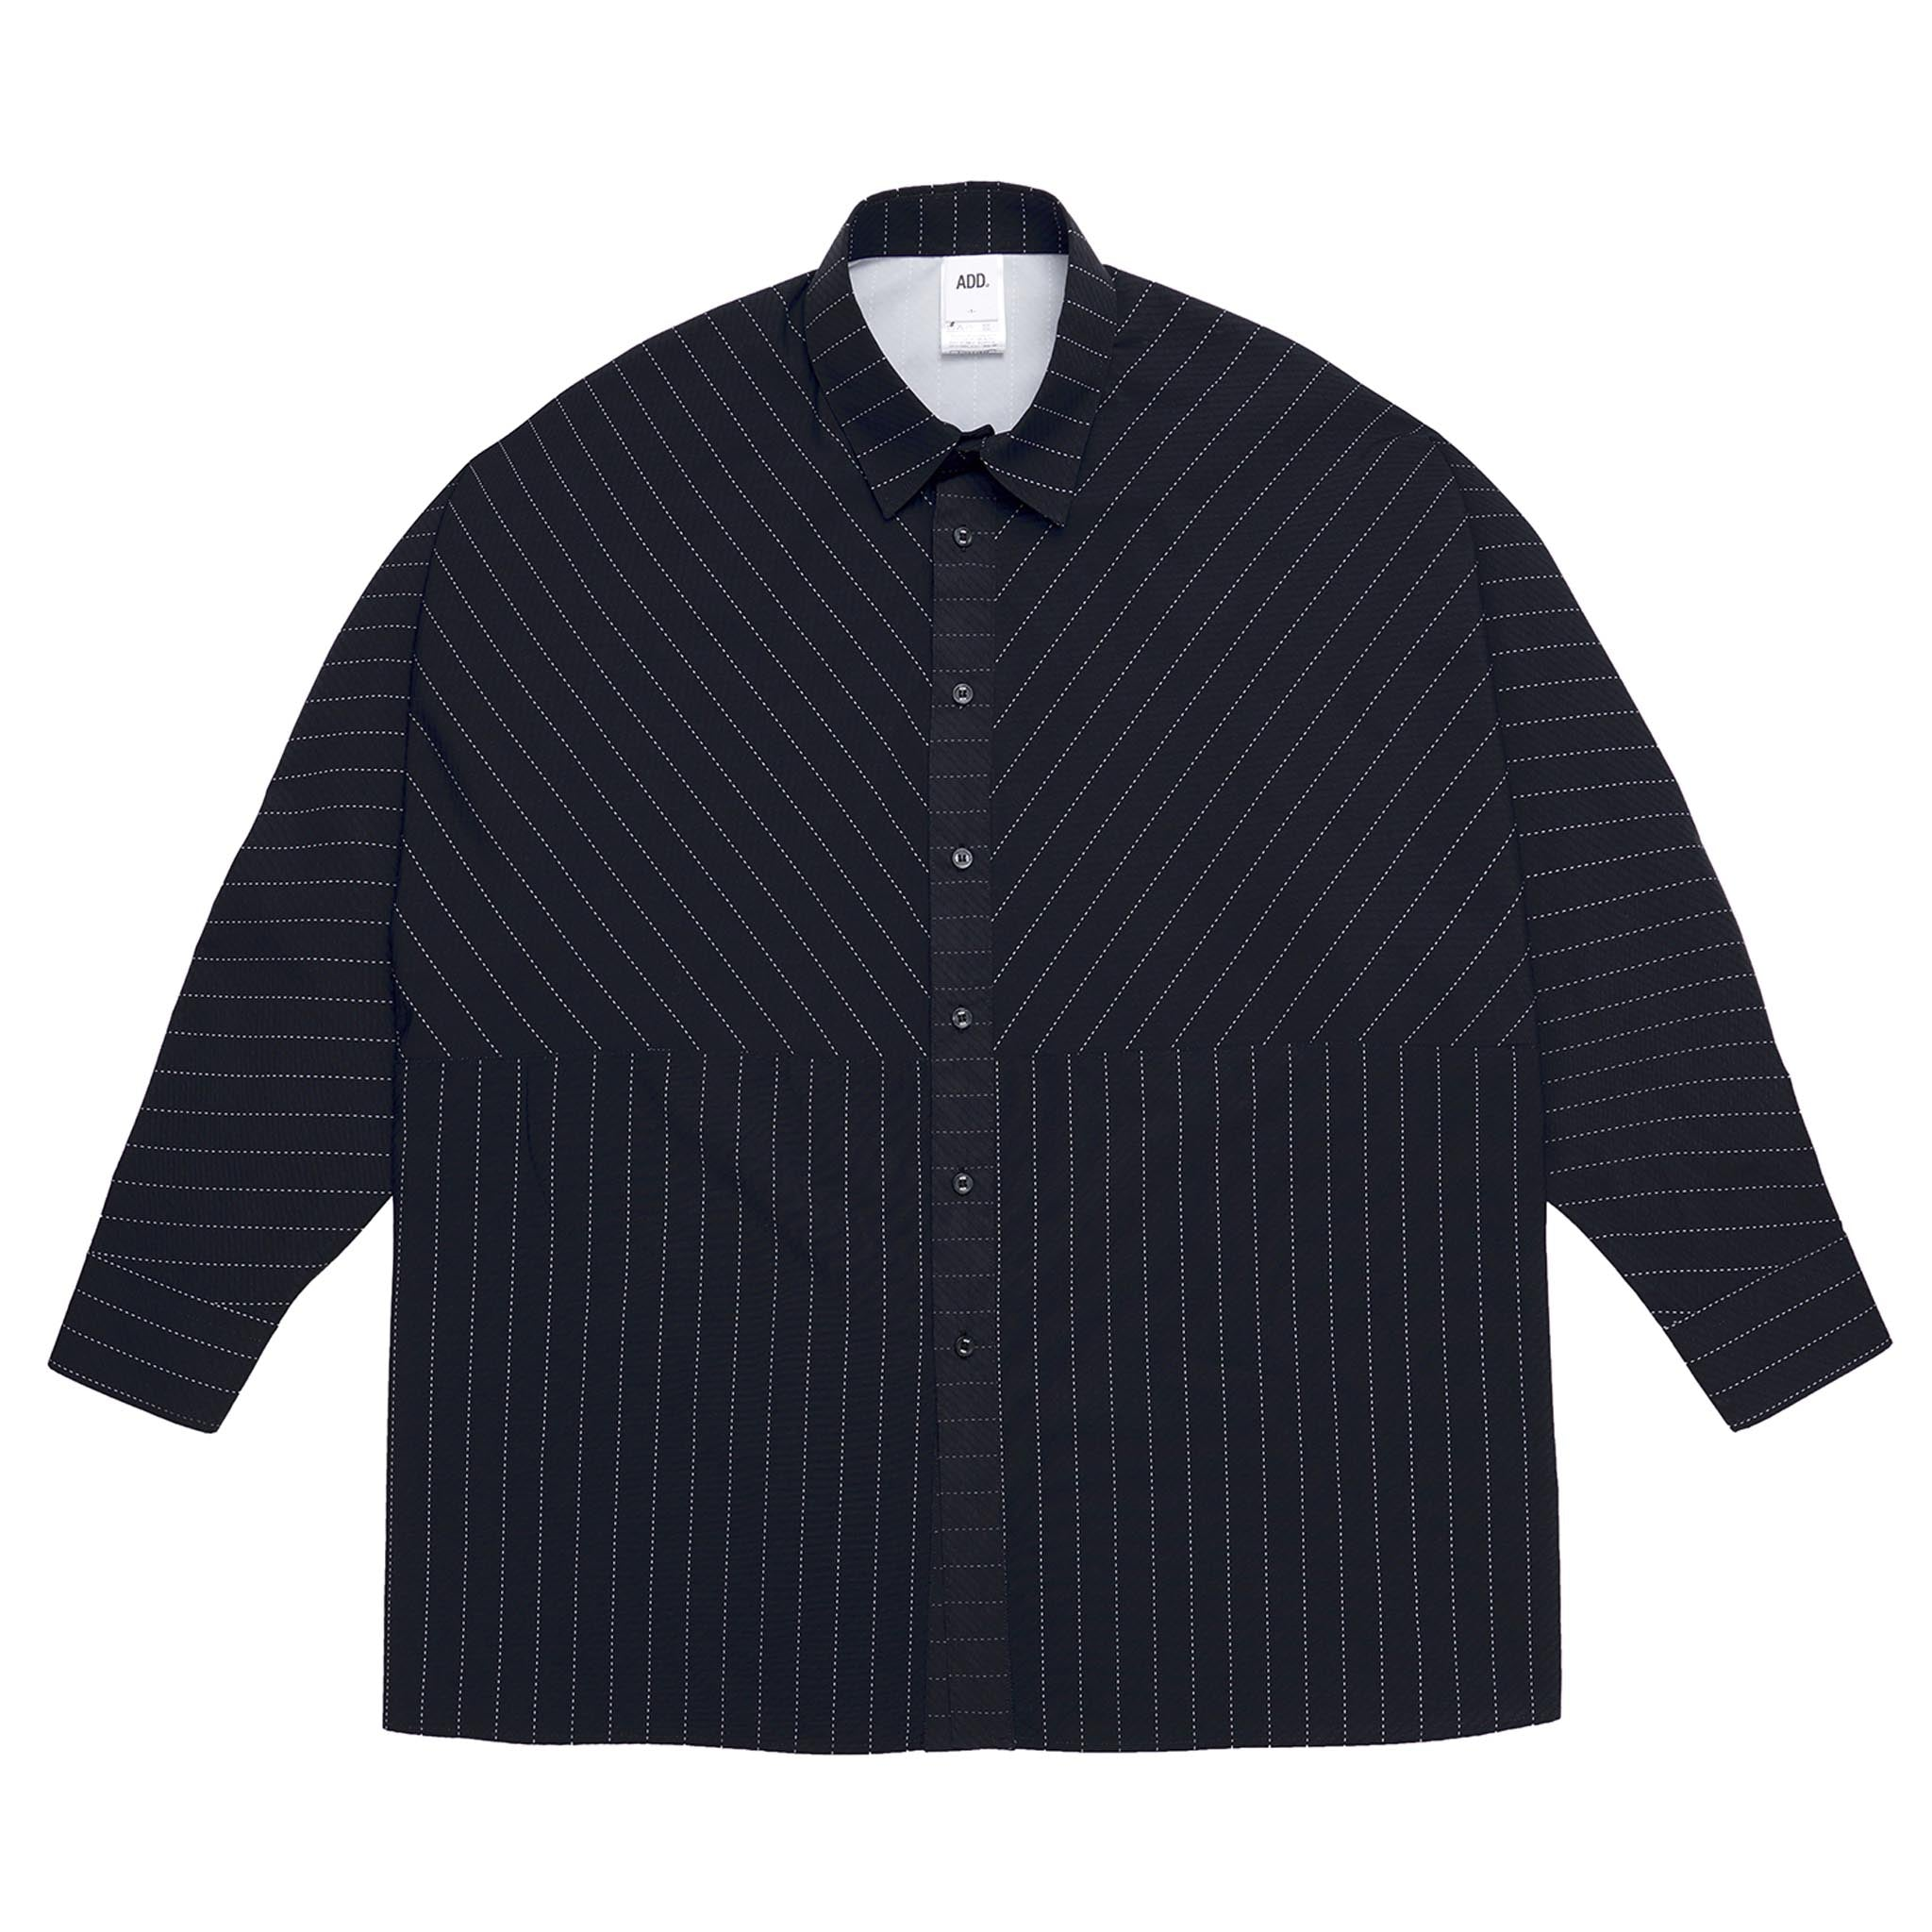 ADD Pinstripe Box Pattern Shirt Navy